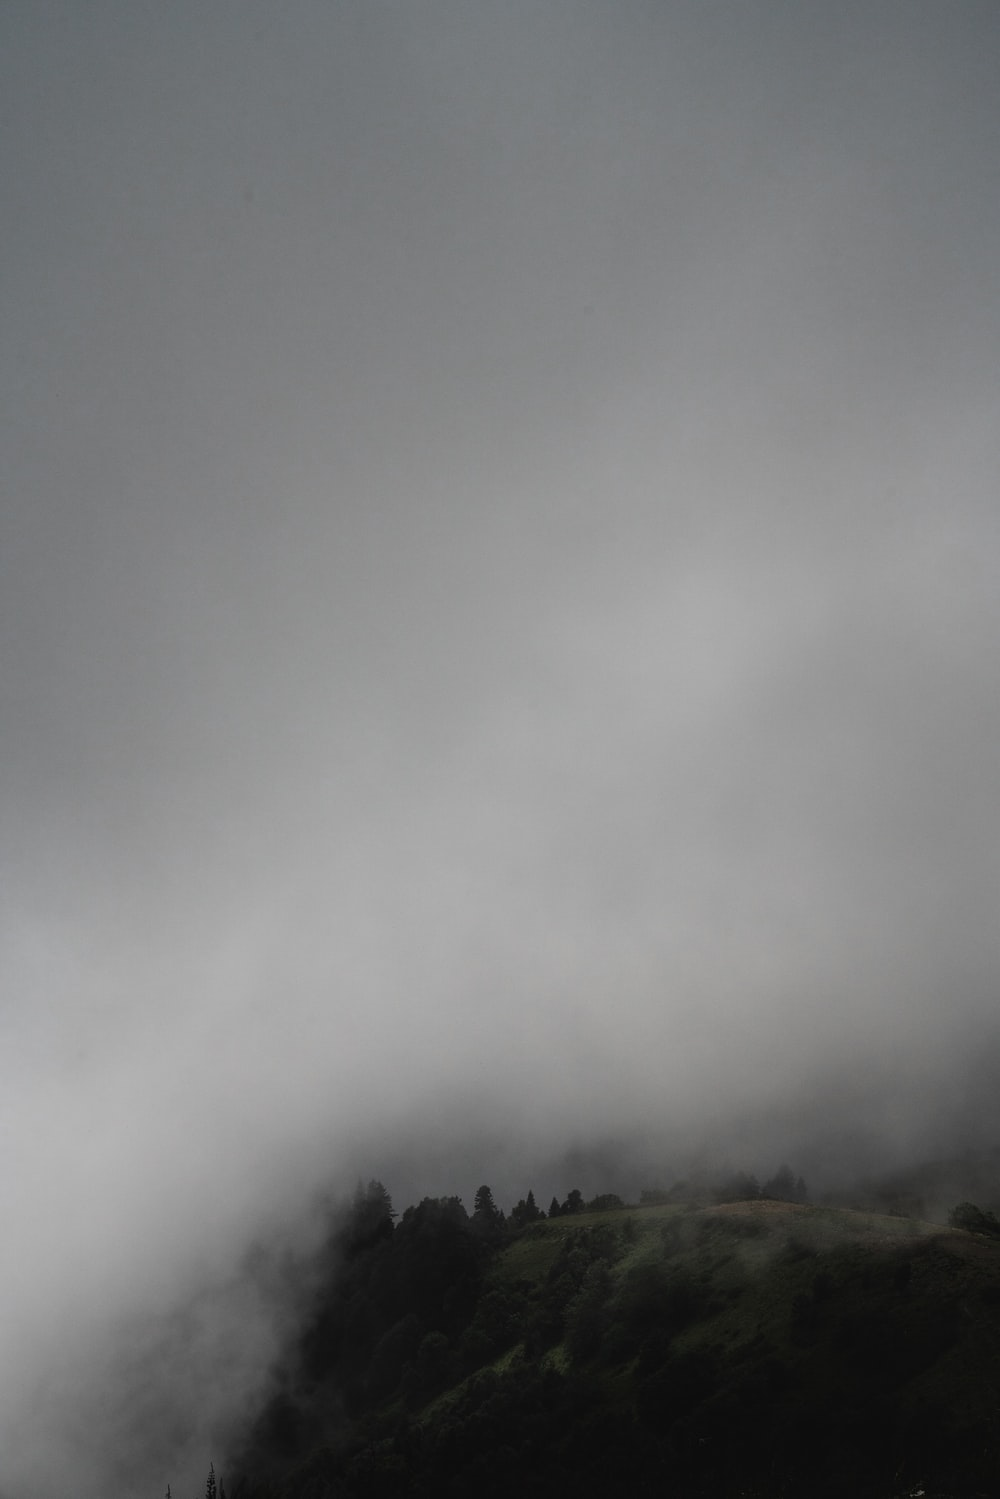 green trees on mountain under white clouds